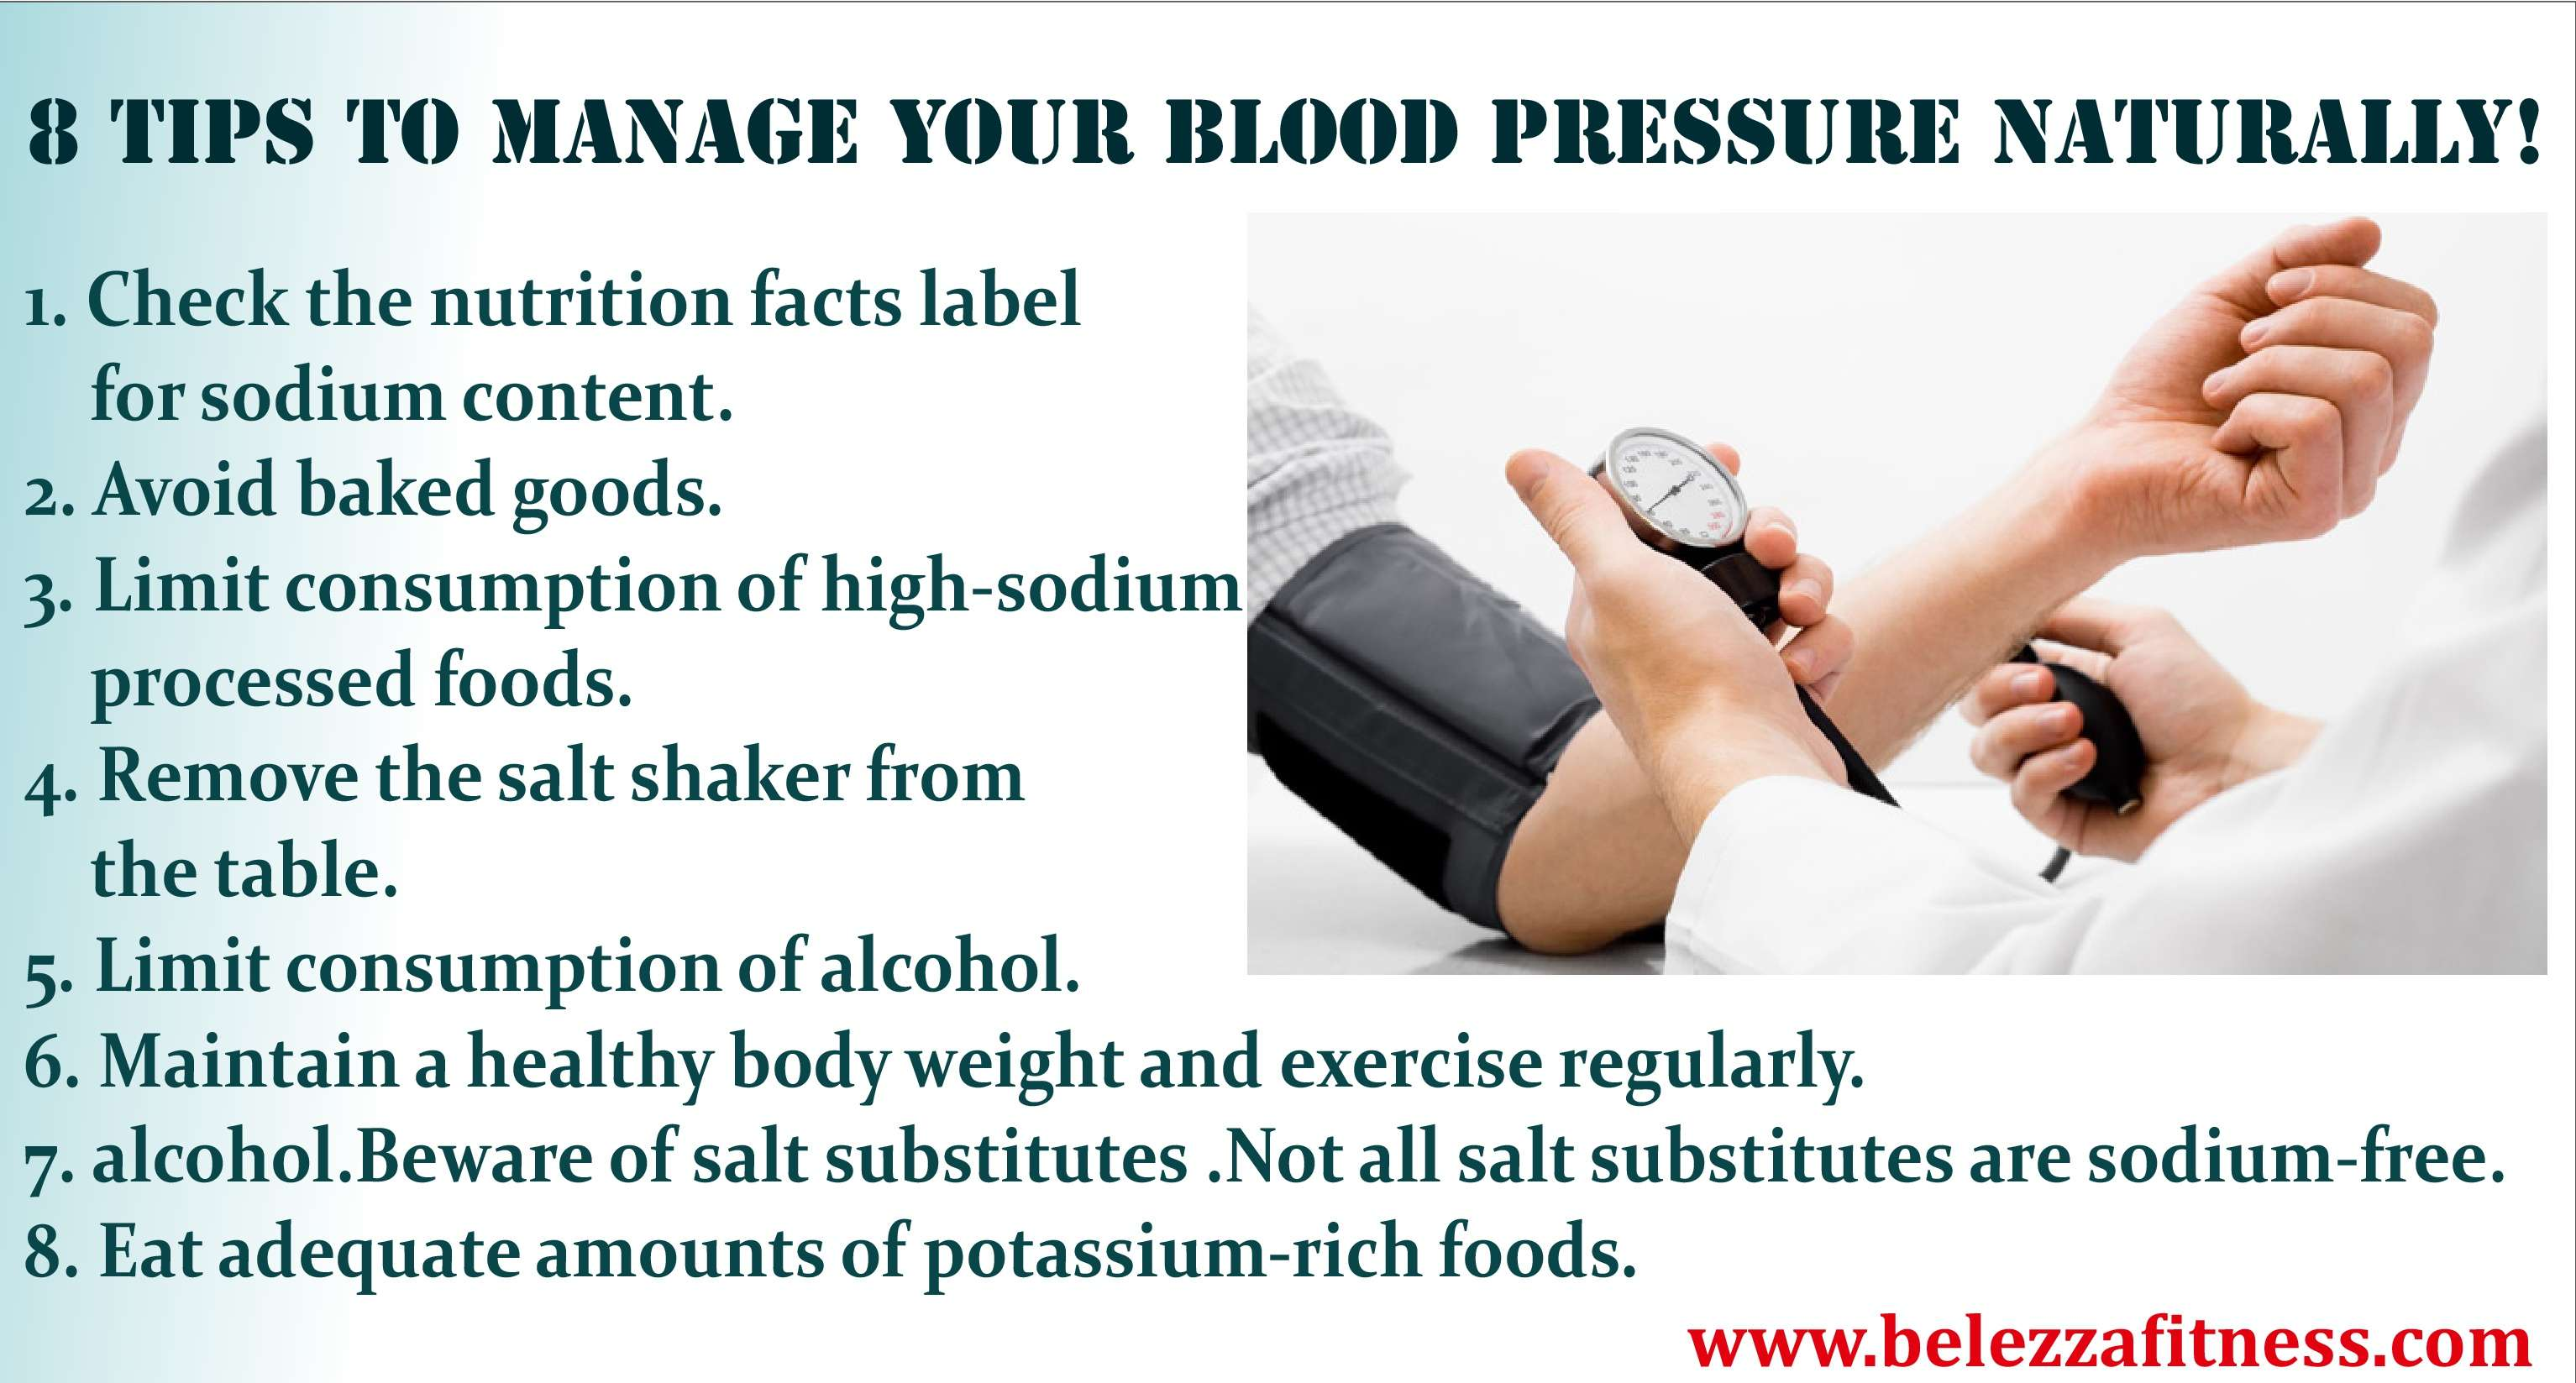 8 tips to manage your blood pressure naturally!